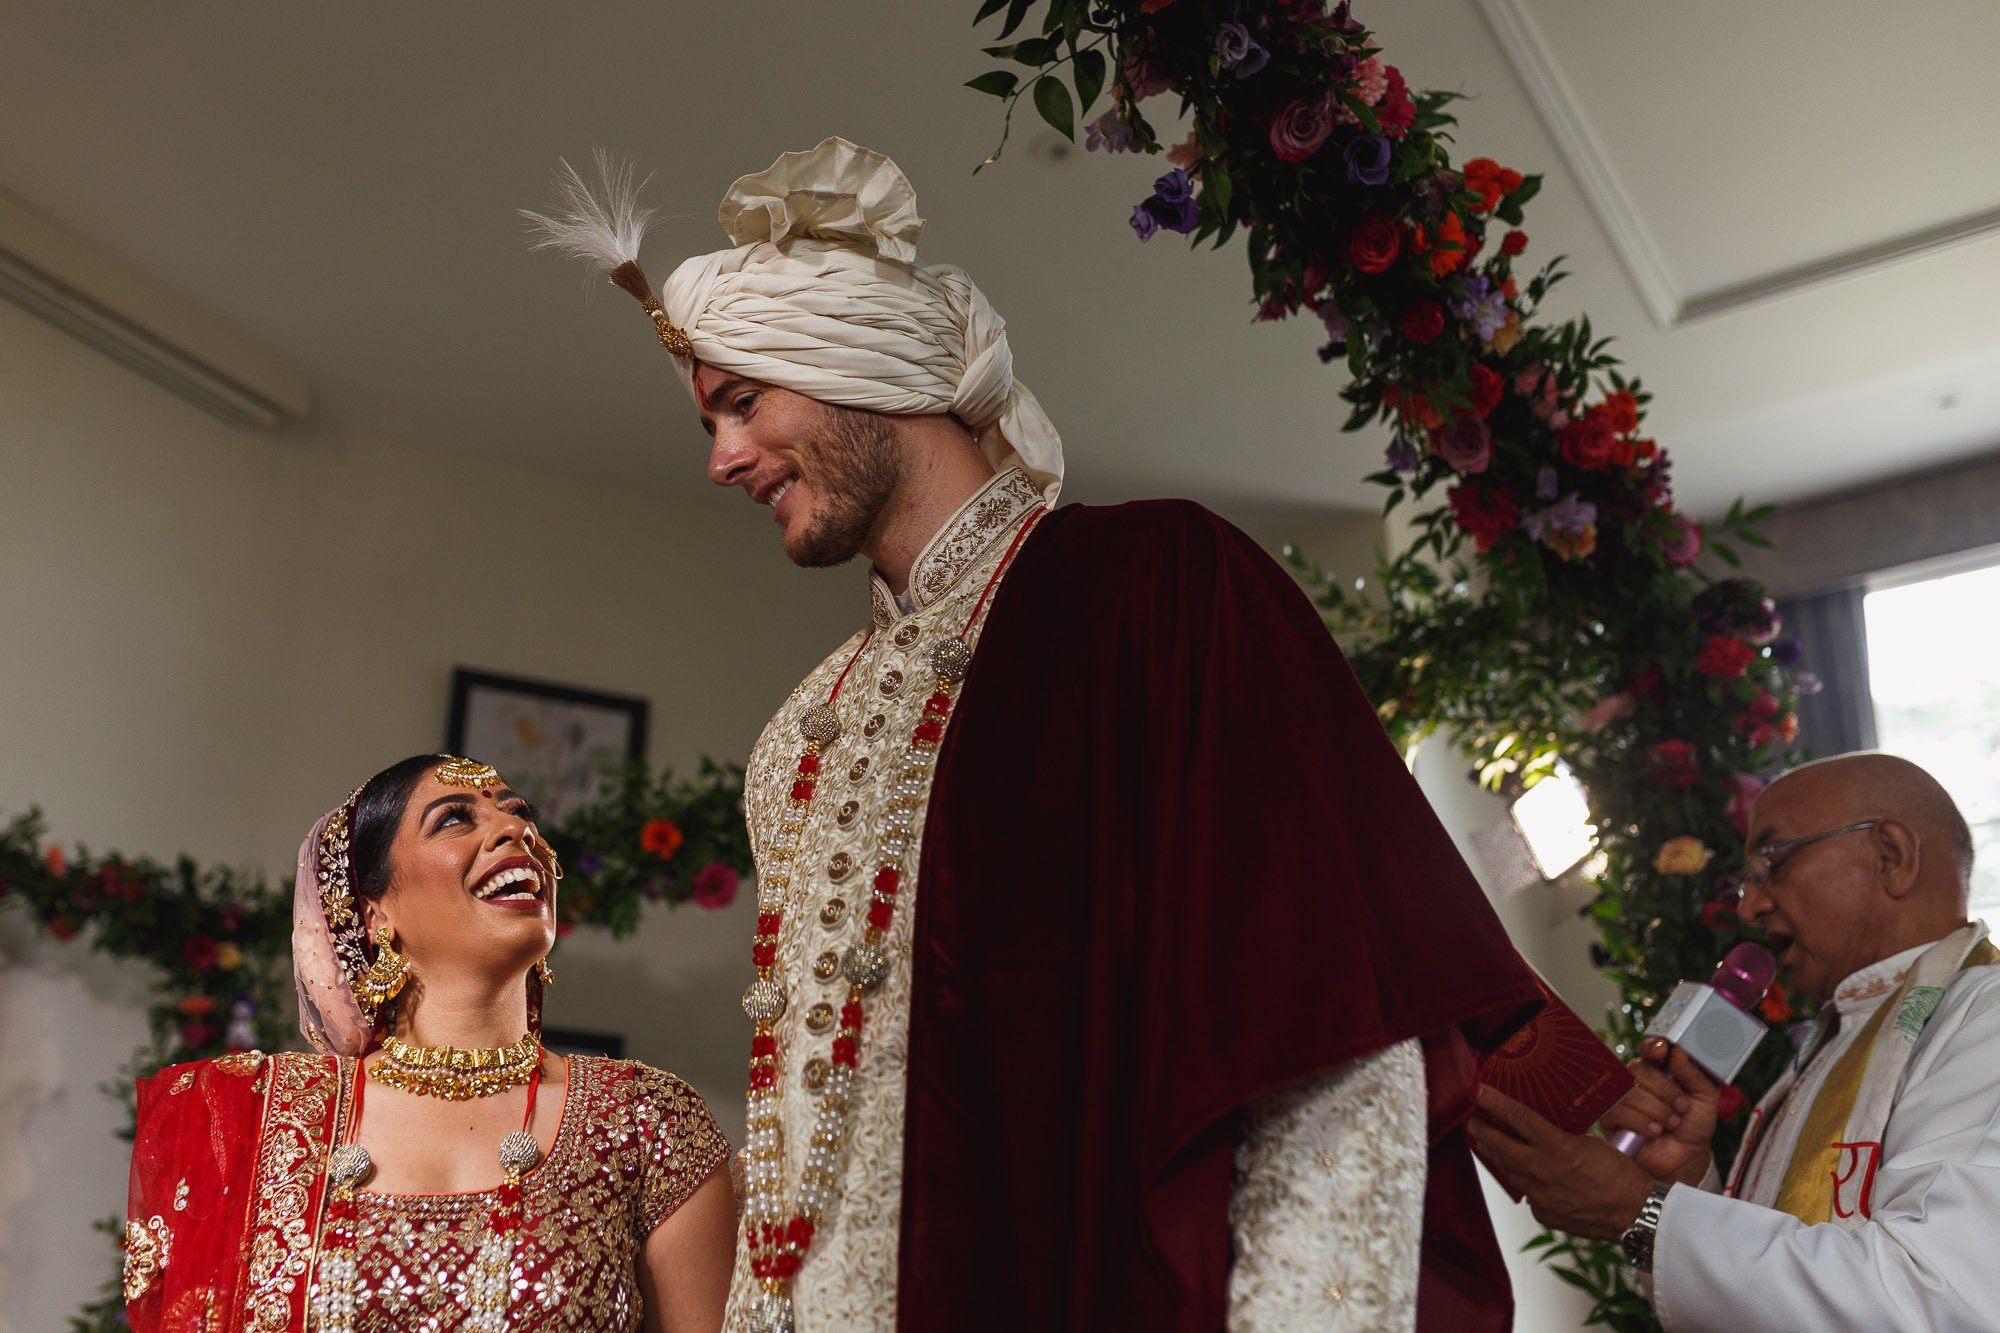 De Vere Wokefield Estate, Asian wedding photographer, bride and groom